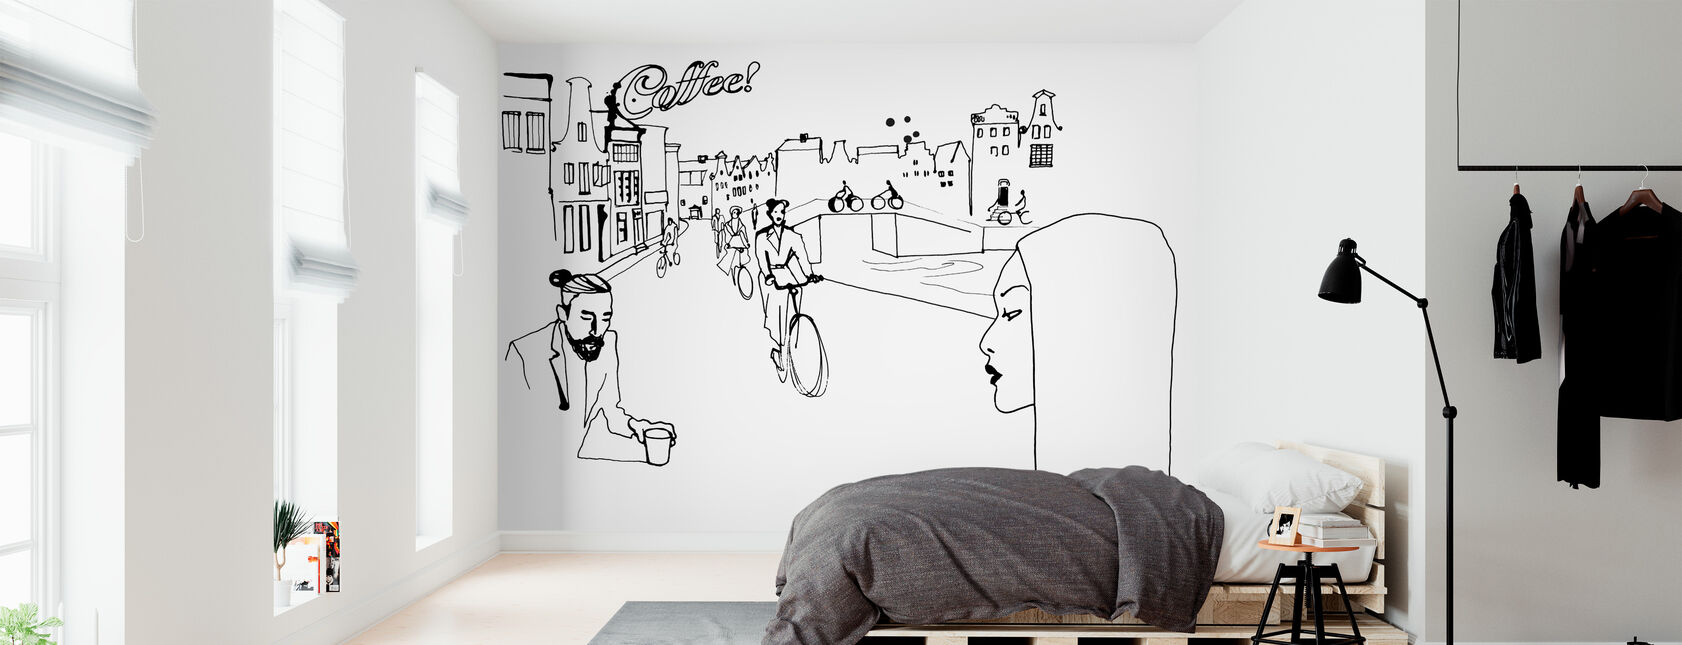 Amsterdam - Wallpaper - Bedroom